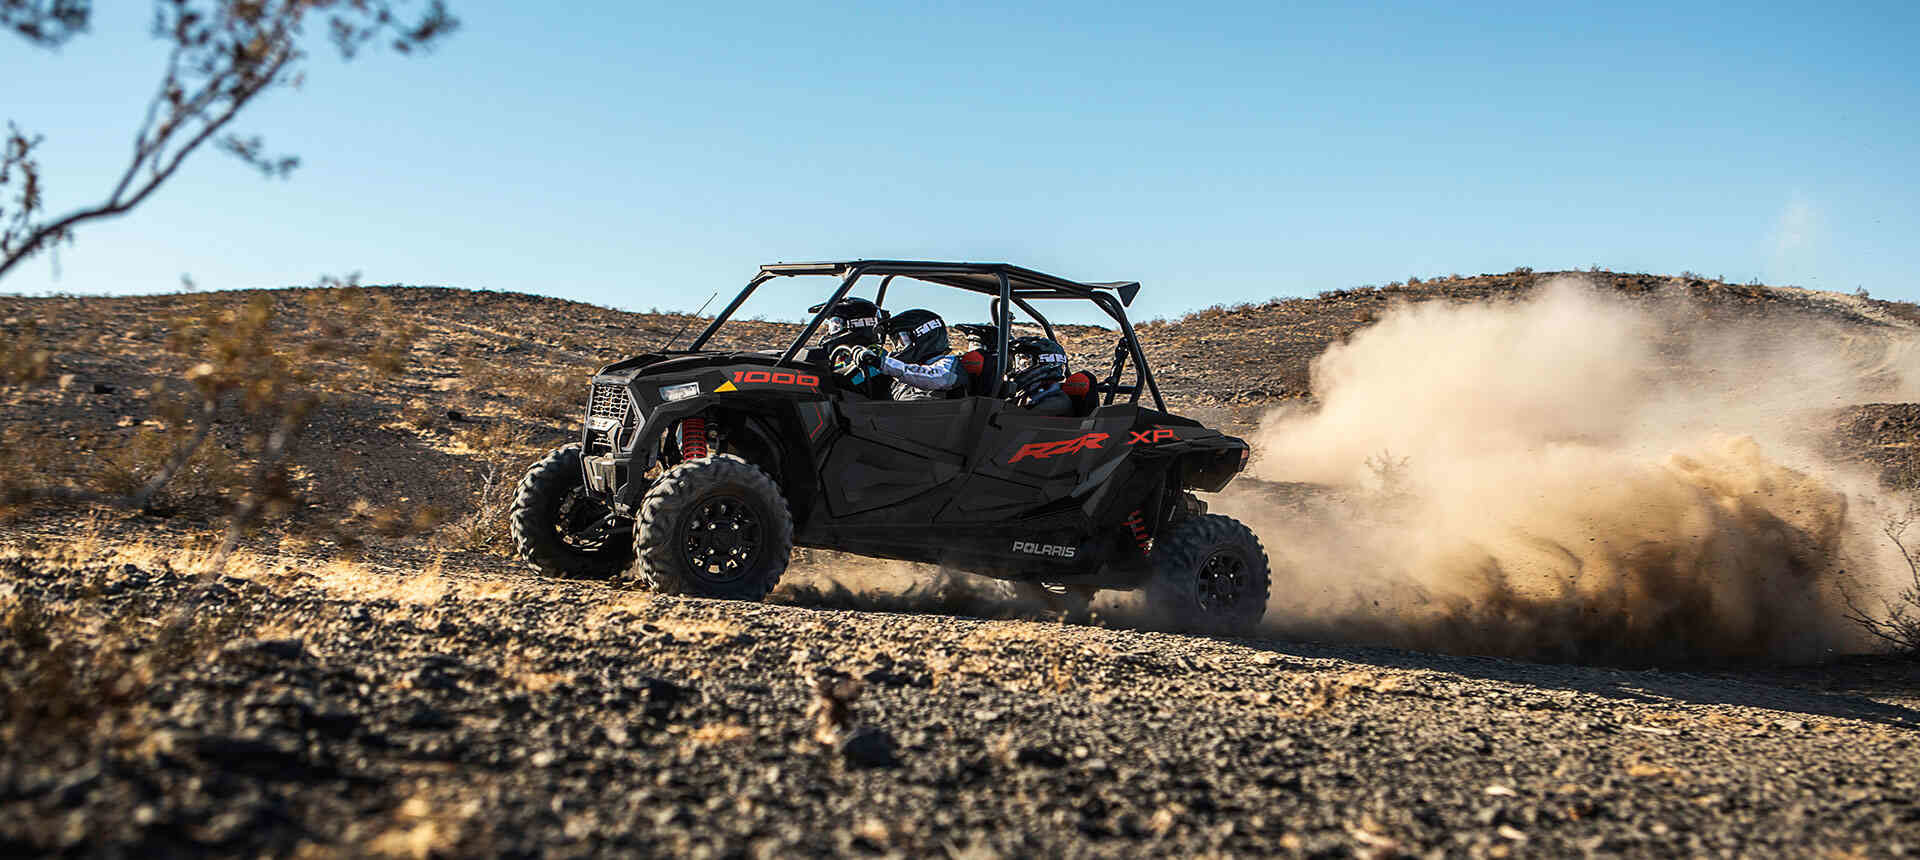 2020 RZR® XP 4 1000 Limited Edition Instagram image 11